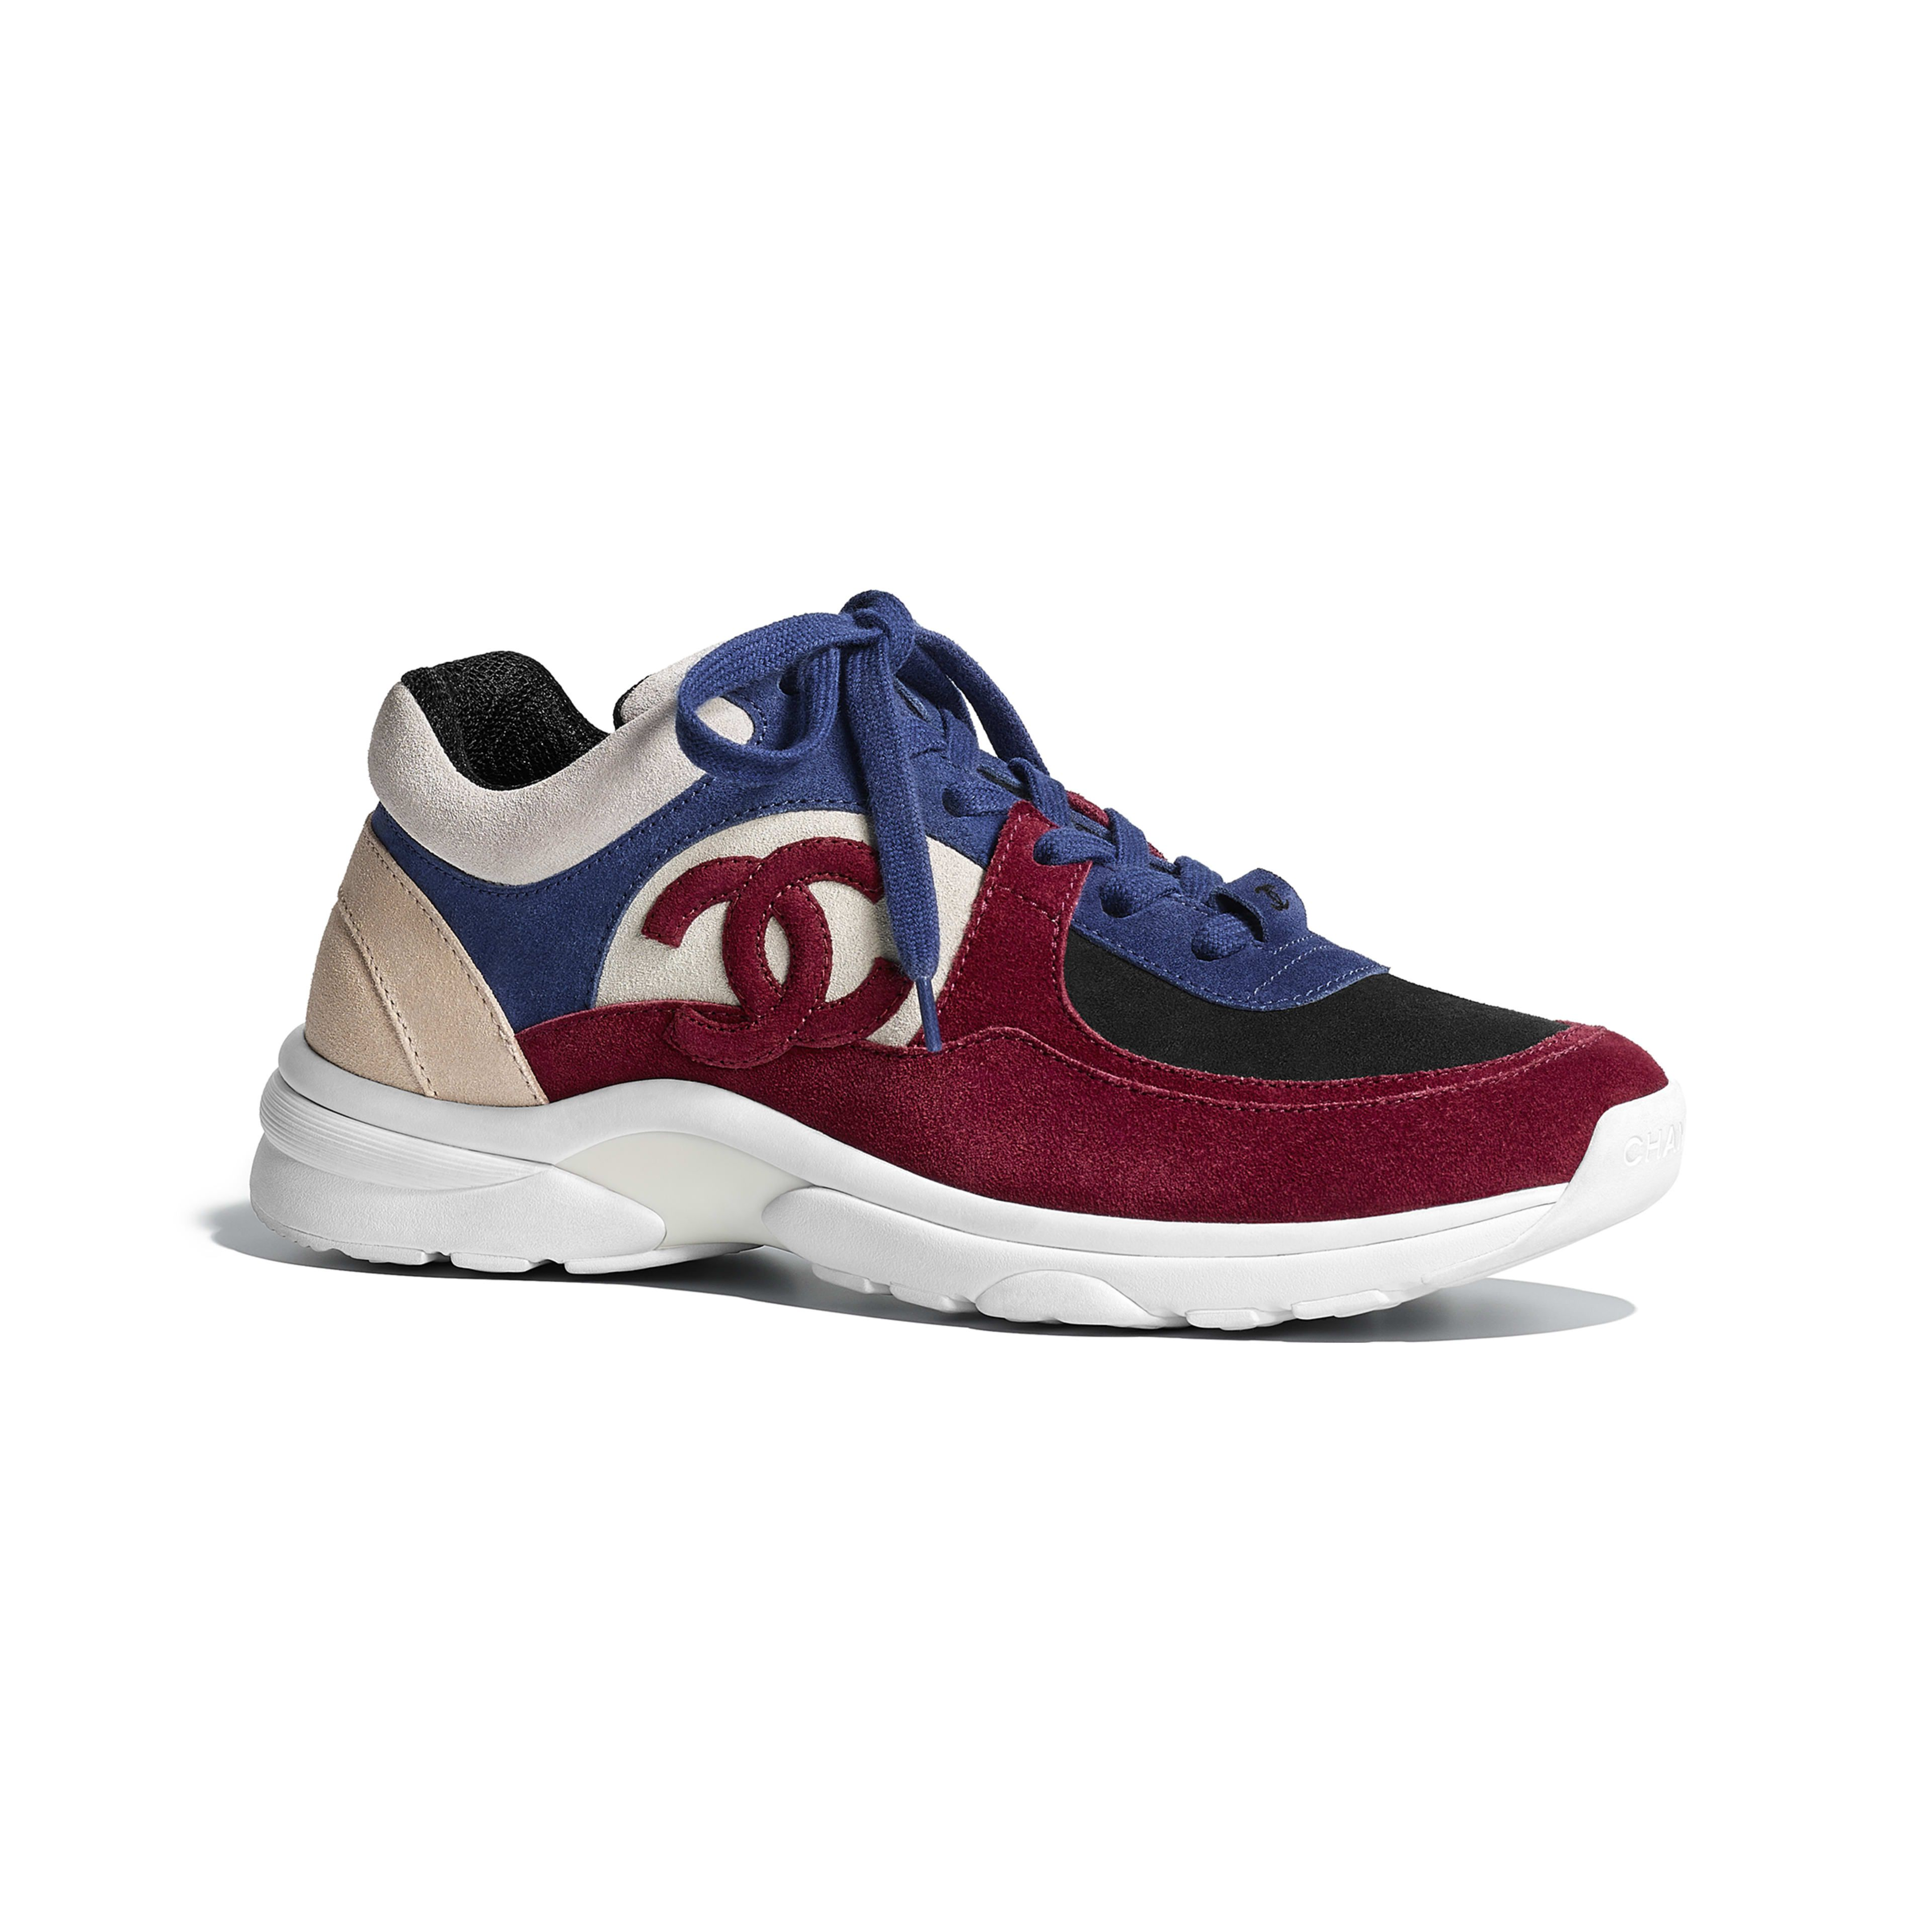 8fb45884be4 Sneakers - Navy Blue   Red - Suede Calfskin - Default view - see full sized  version